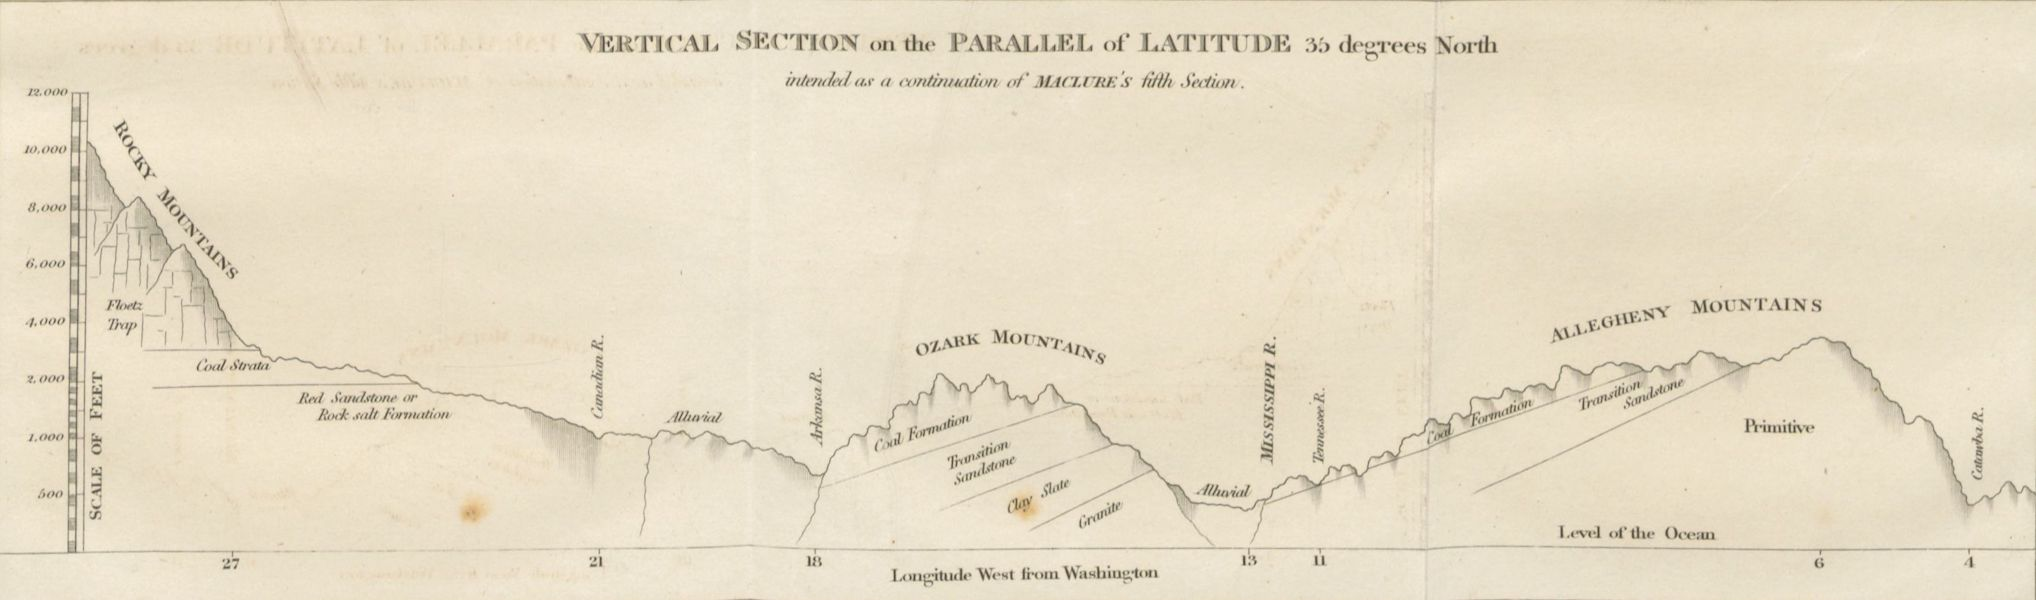 Account of an Expedition from Pittsburgh to the Rocky Mountains Vol. 3 - Vertical Section on the Parallel of Latitude 35 Degrees North (1823)